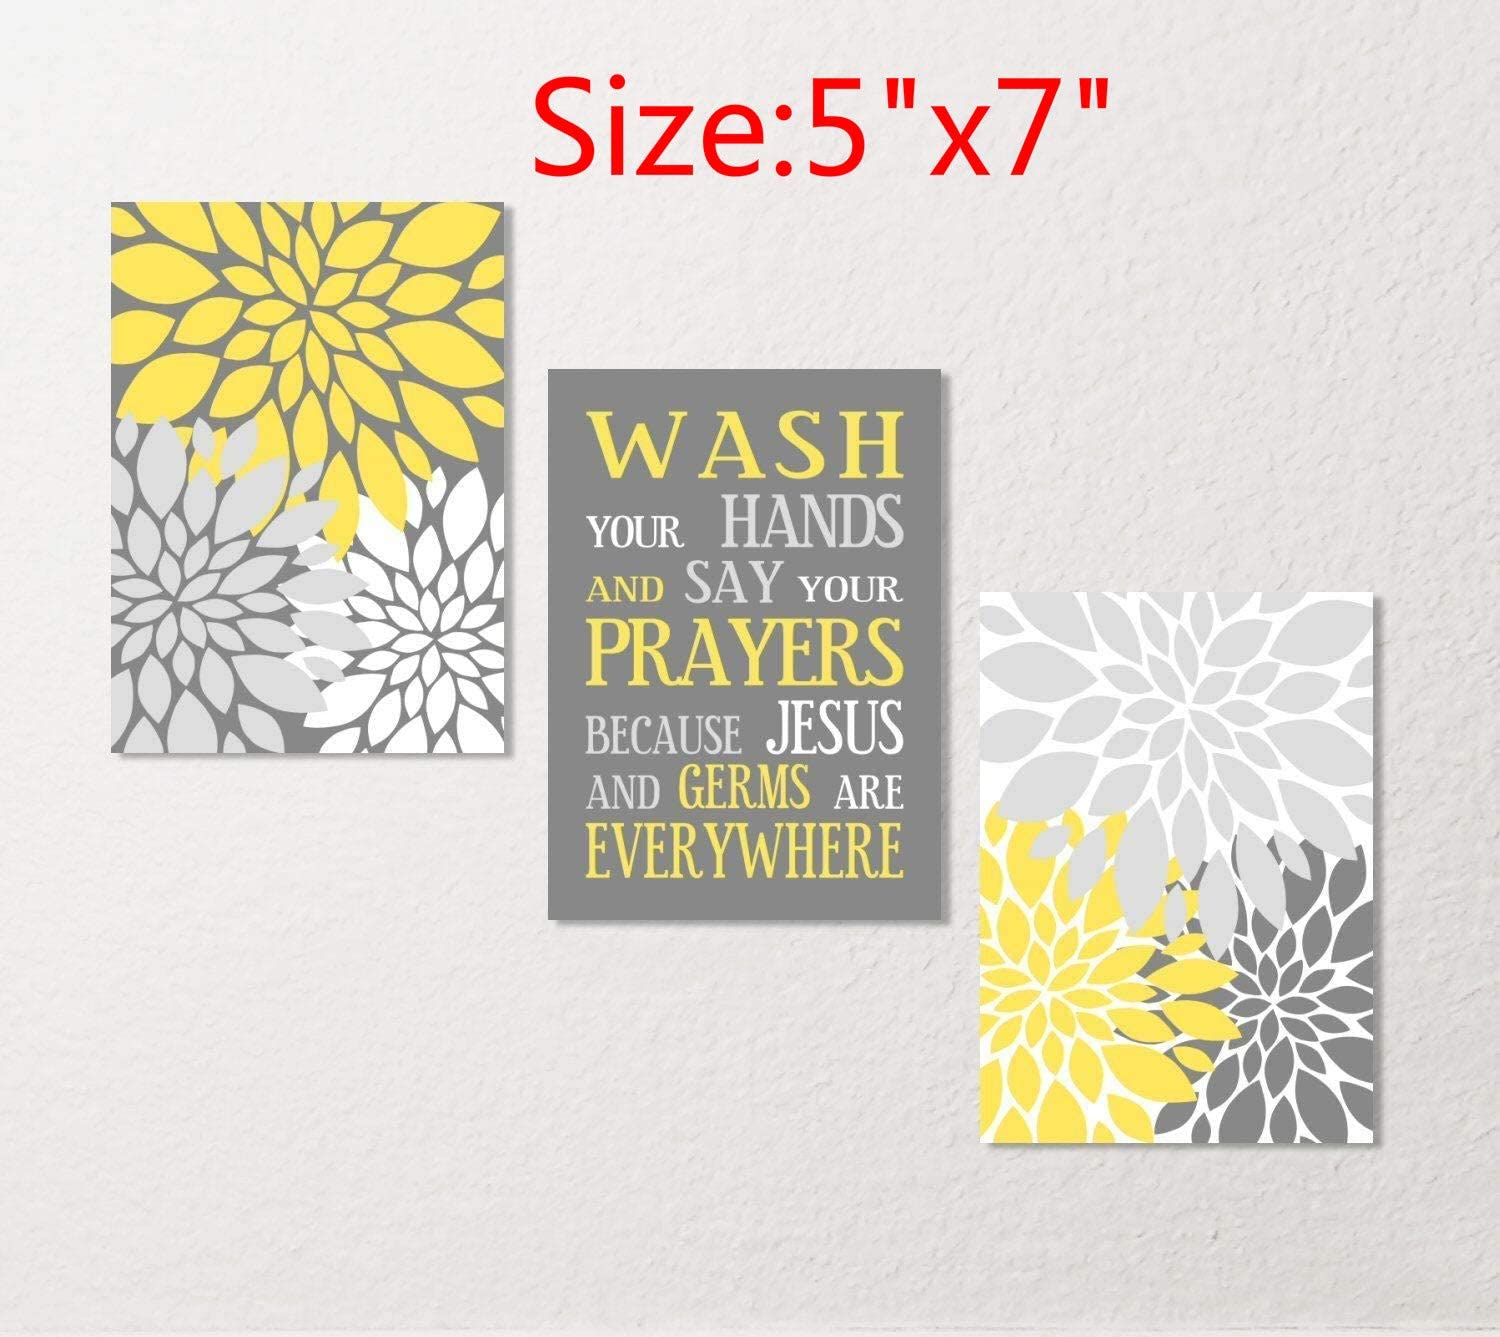 Amazon Com Blafitance Bathroom Wall Art Set Wash Your Hands Germs Jesus Saying Flower Canvas Or Prints Home Decor Yellow Gray White Spa Posters Prints